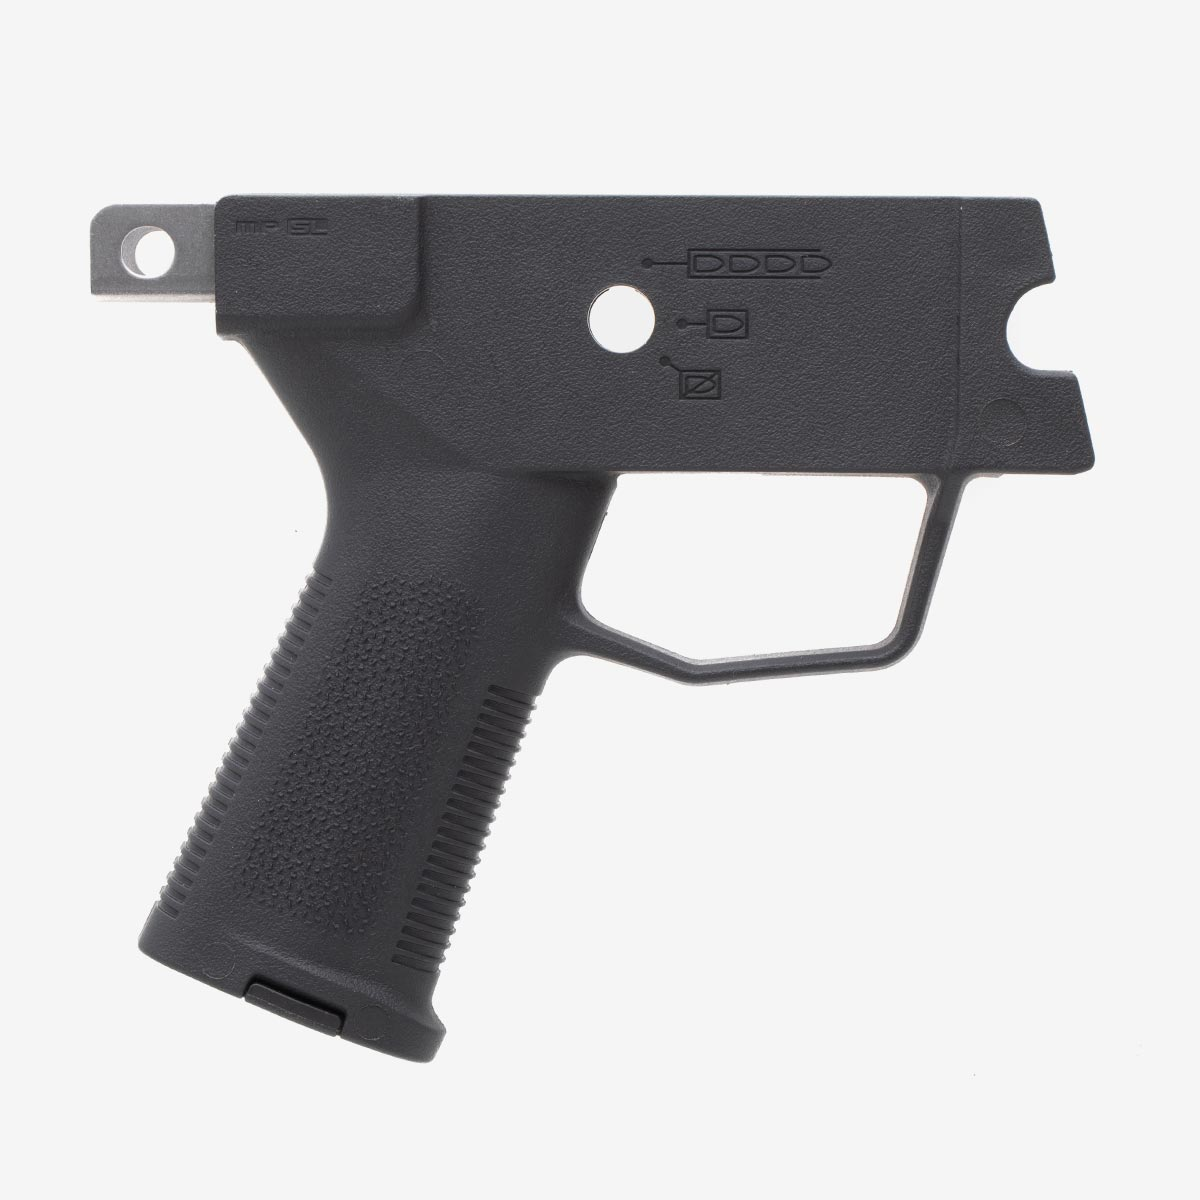 Right side view of Magpul SL Grip Module for HK showing optimized grip angle and TSP texture